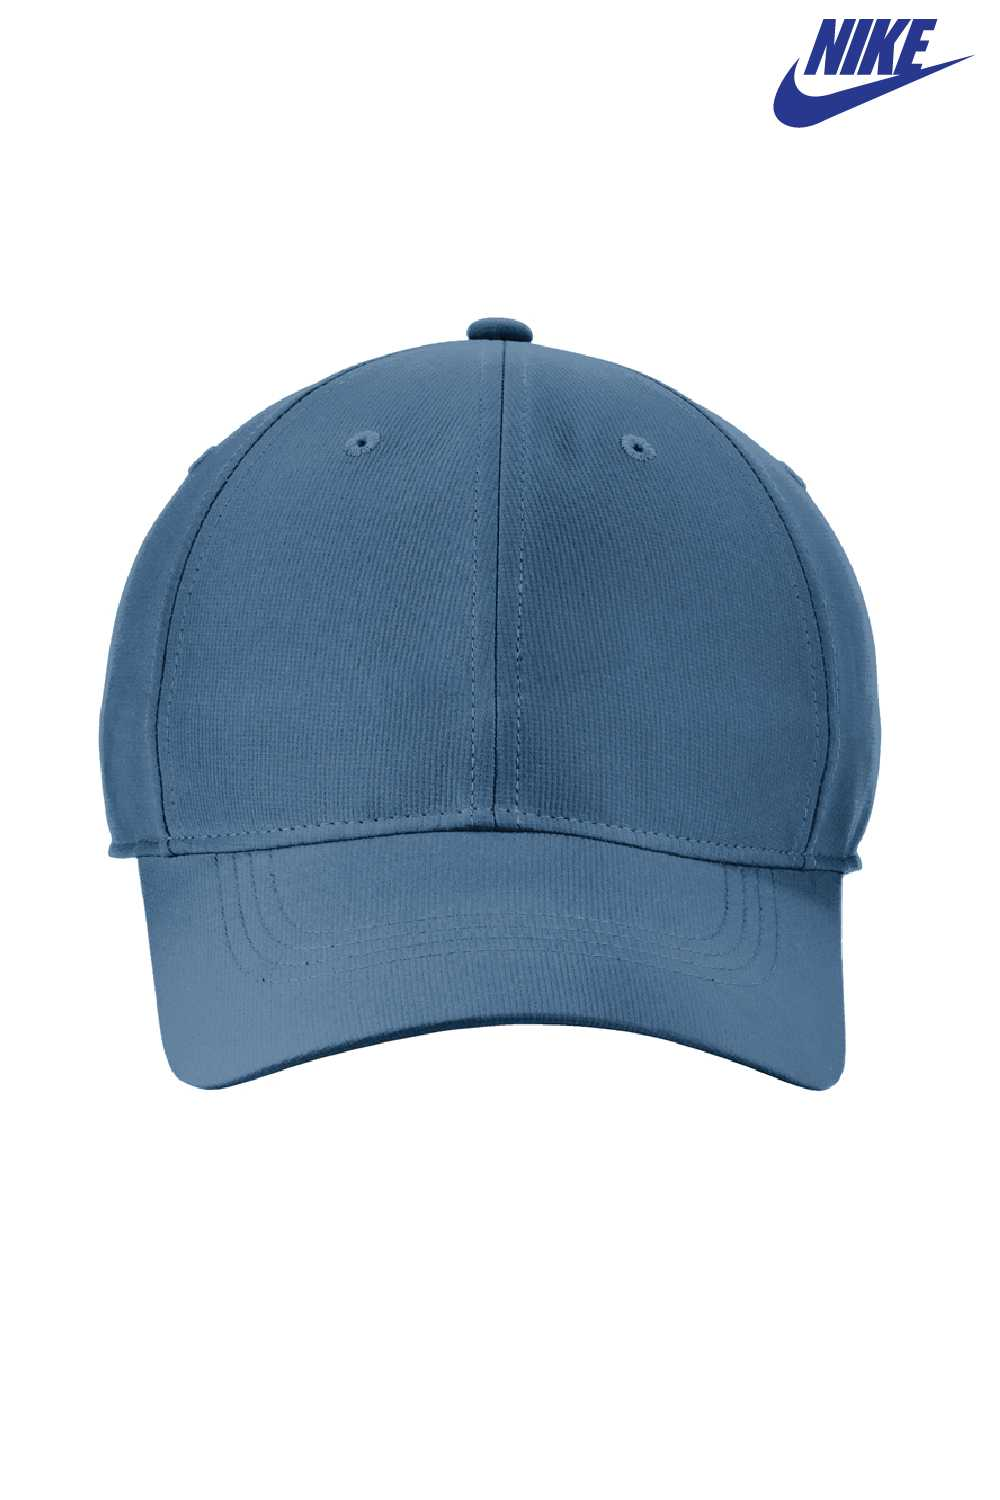 d36bb8181a0 ... usa nike nkaa1859 navy blue white dri fit tech adjustable hat front  7105c 7e8fb